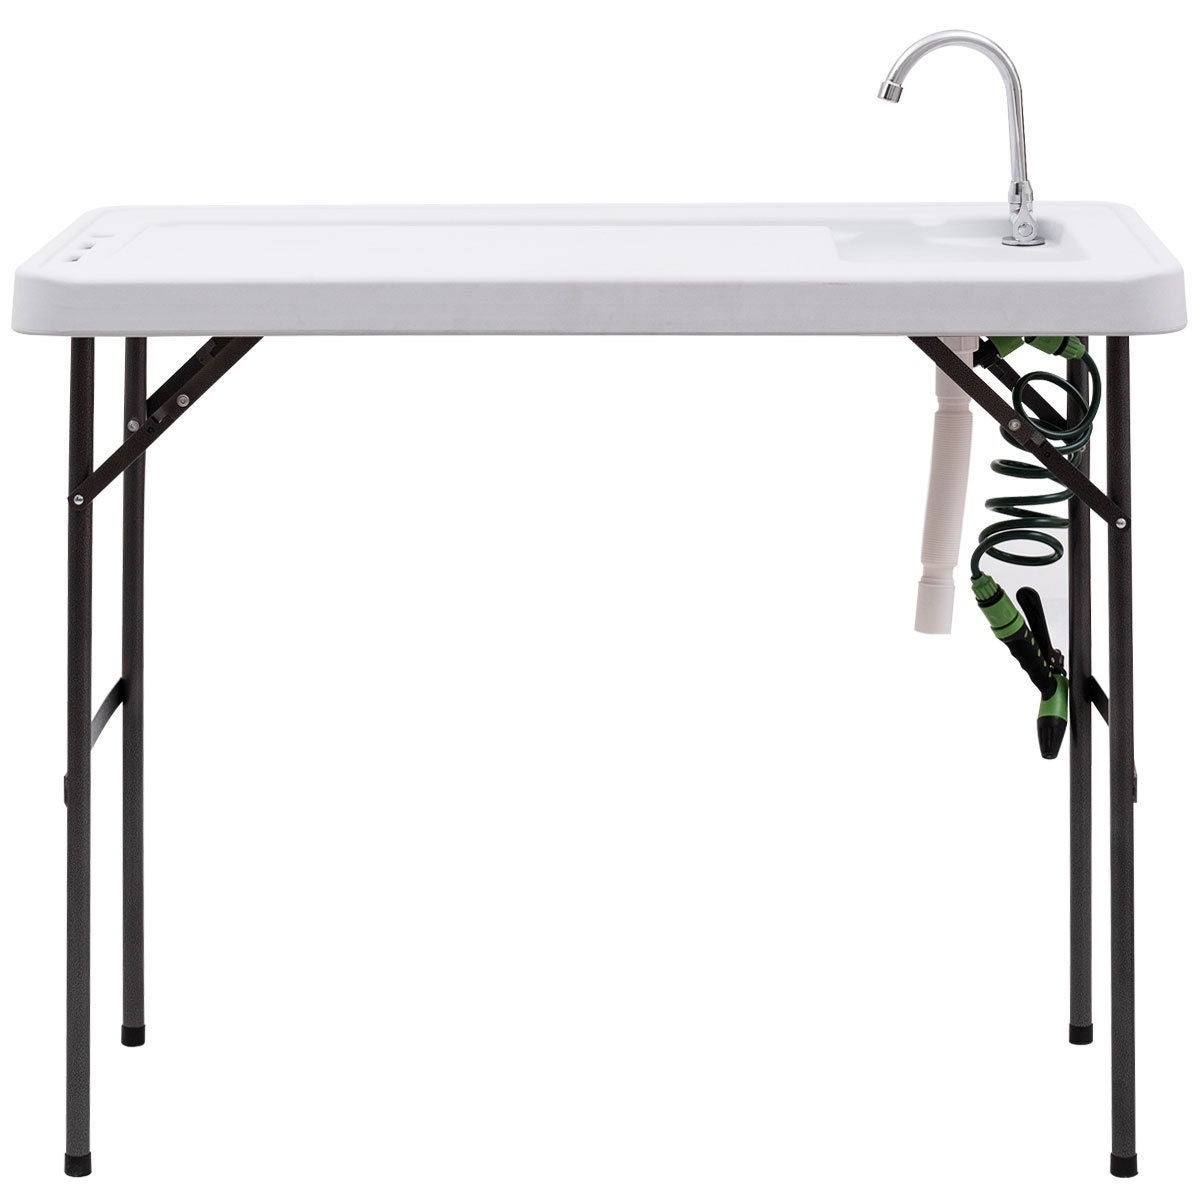 Costway Folding Fish Table Hunting Cleaning Cutting Camping Sink ...